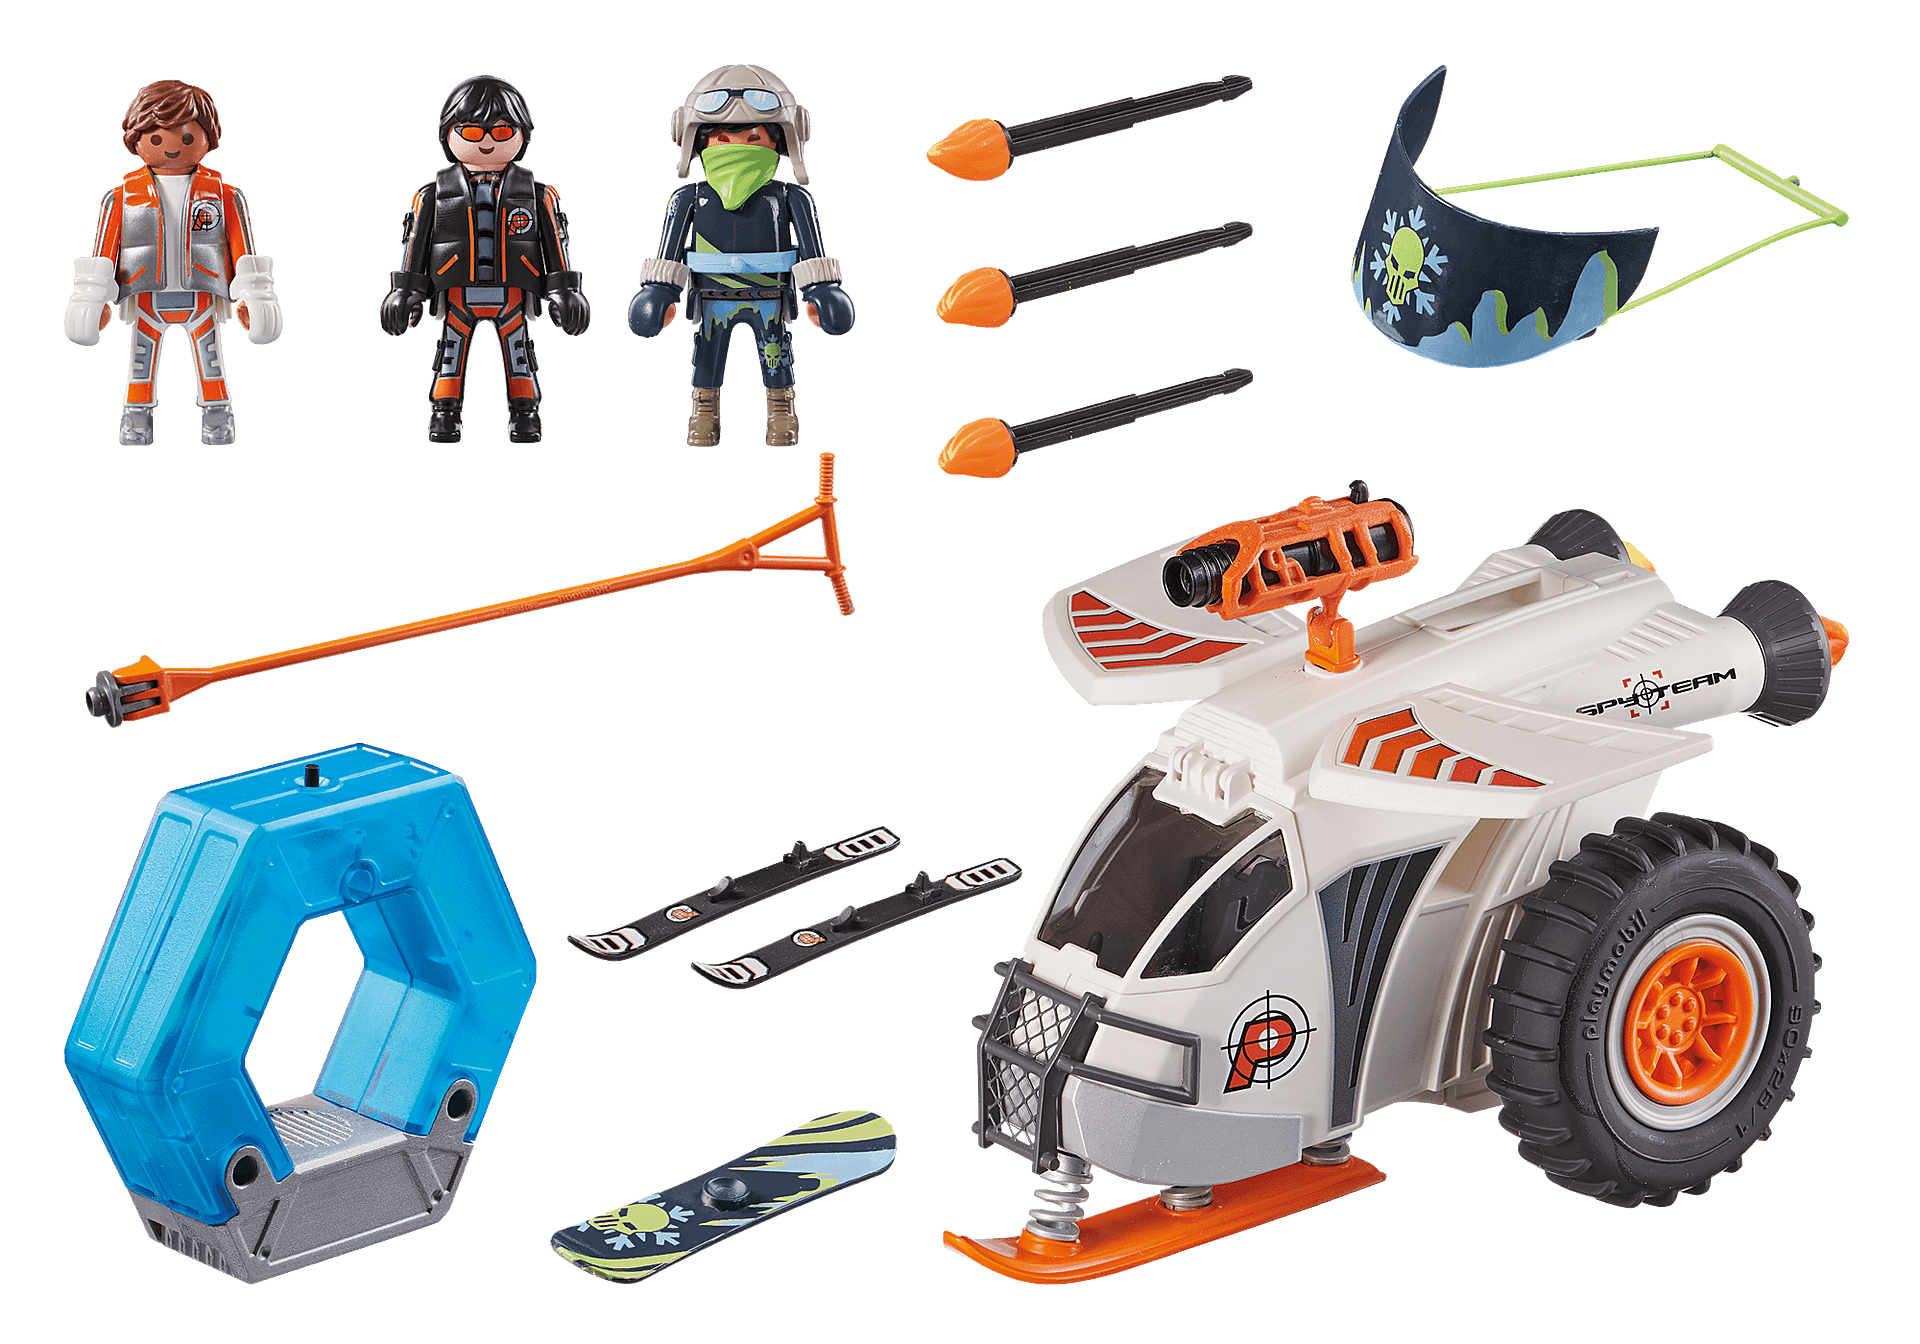 70231 Spy Team Snow Glider zoom image3